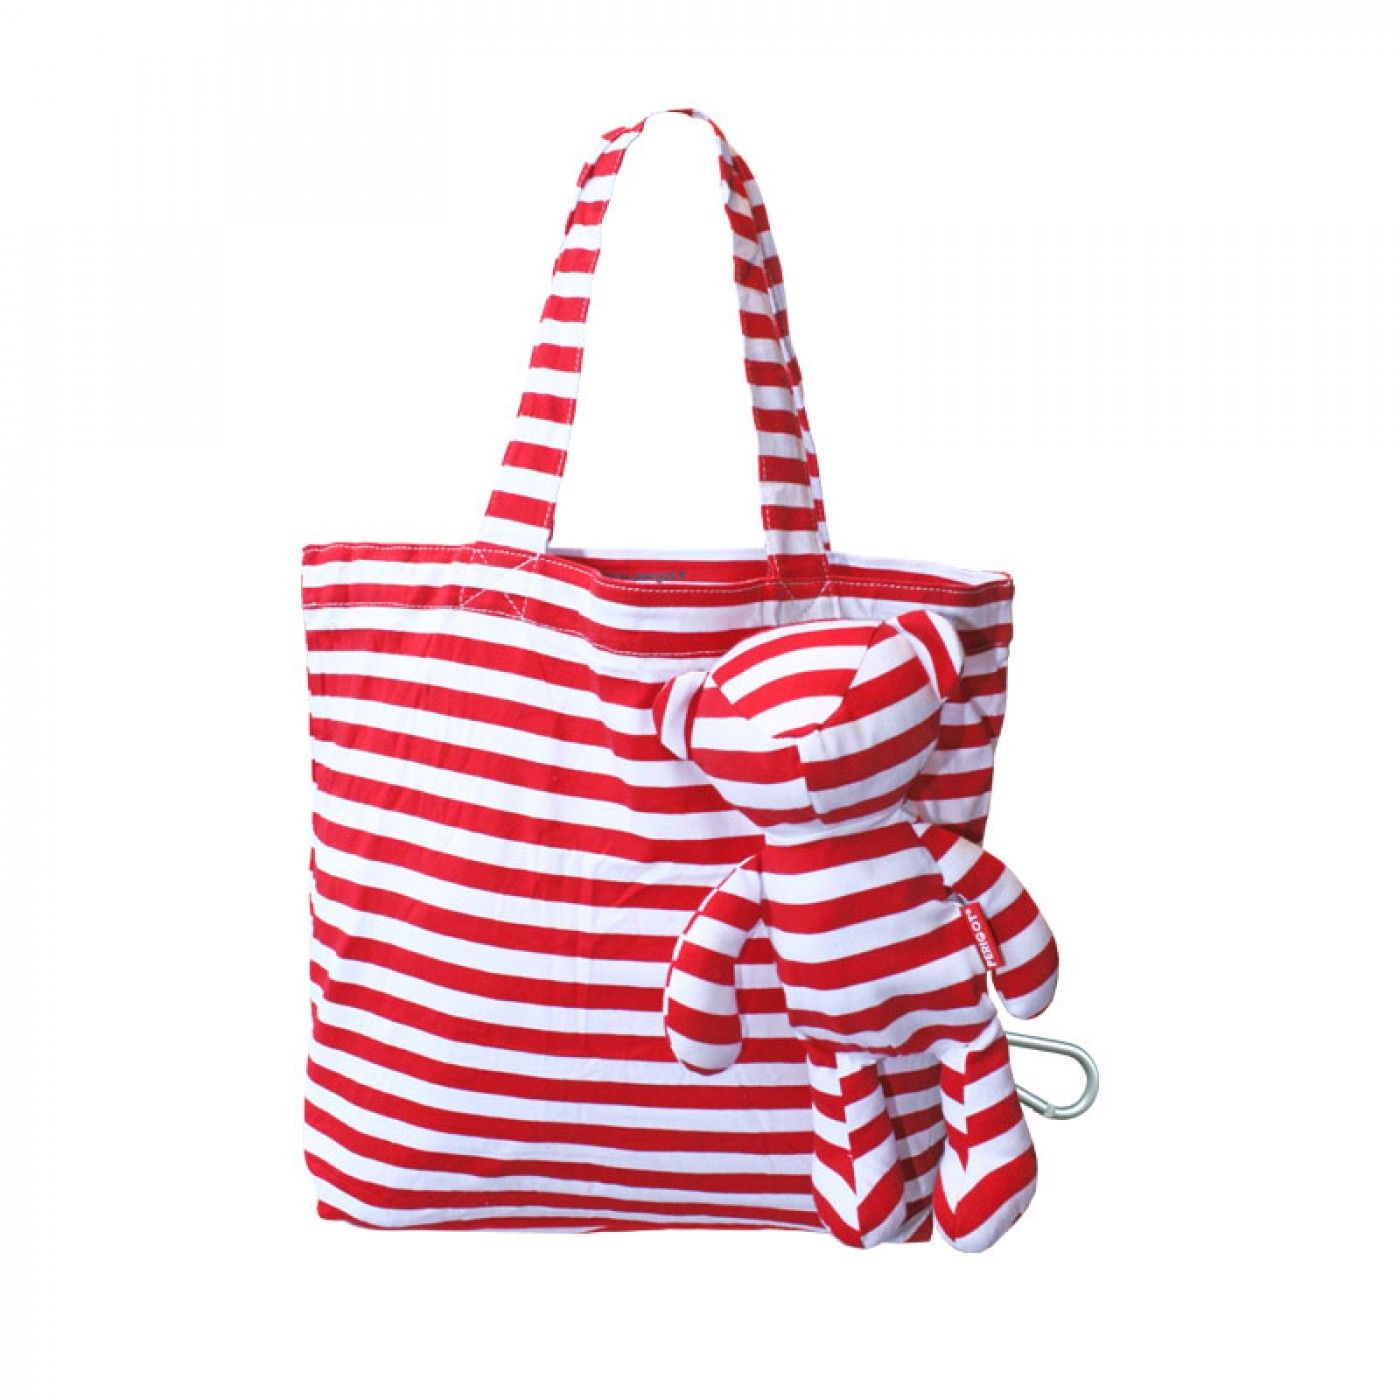 Pin by Loopee Design on Perigot Tote bag, Bags, Shopping bag